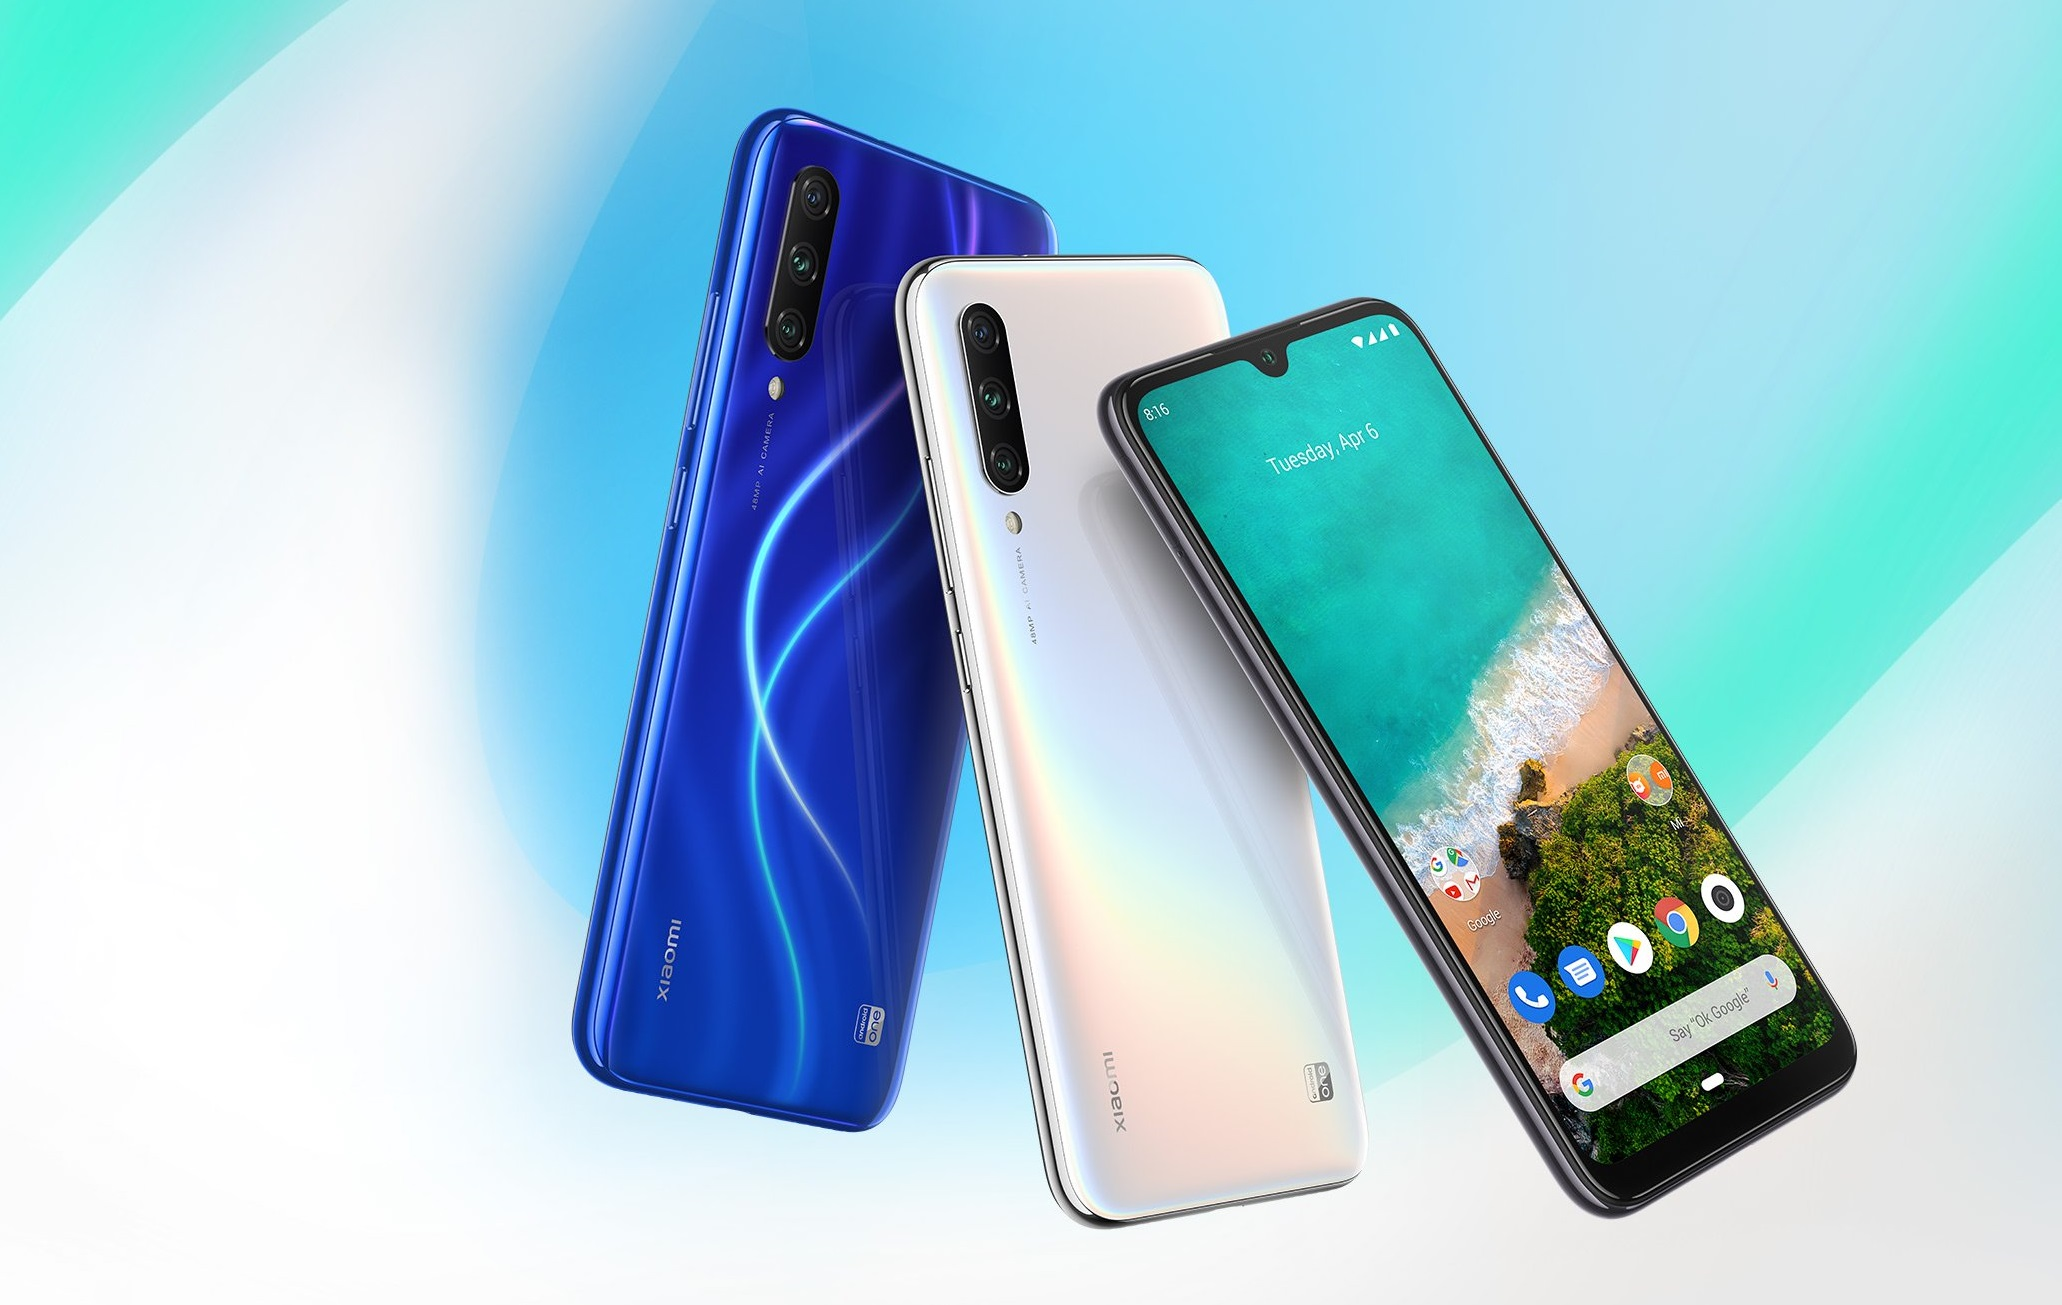 Xiaomi Mi A3 to get a native screen recorder with Android 11; call recording possibly in doubt - Notebookcheck.net